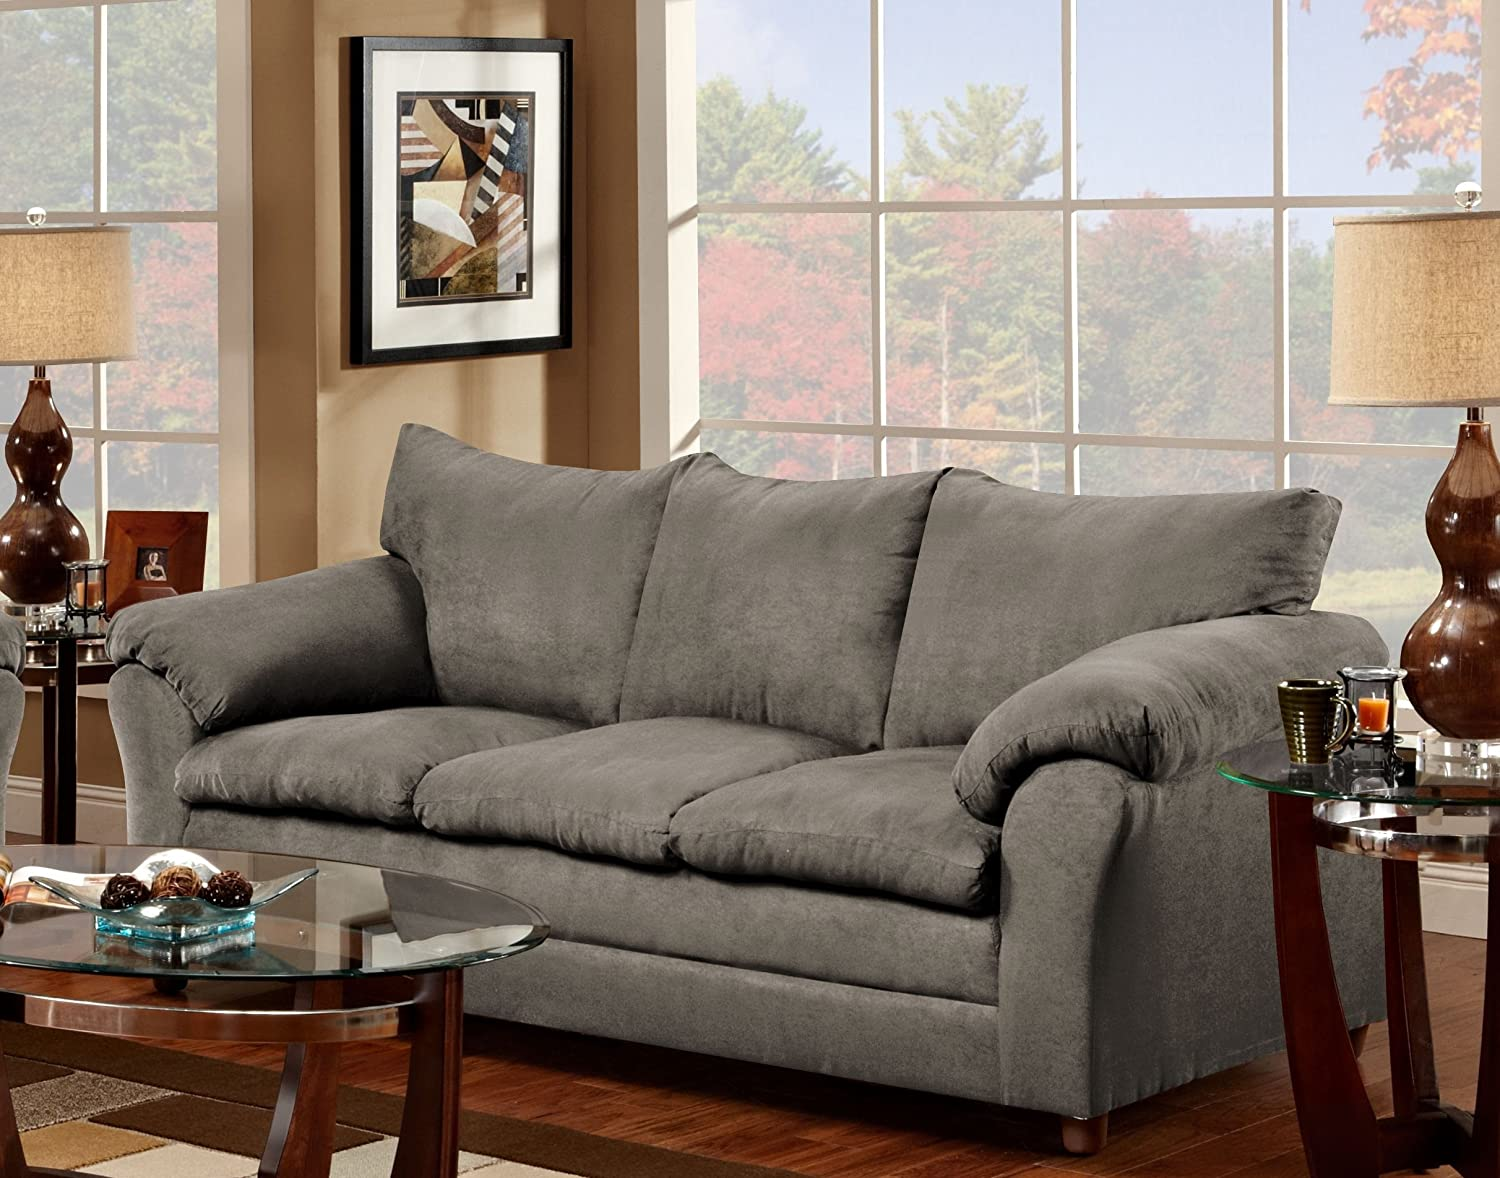 Amazon.com: Chelsea Home Furniture Gail Sofa, Flatsuede Graphite: Kitchen U0026  Dining